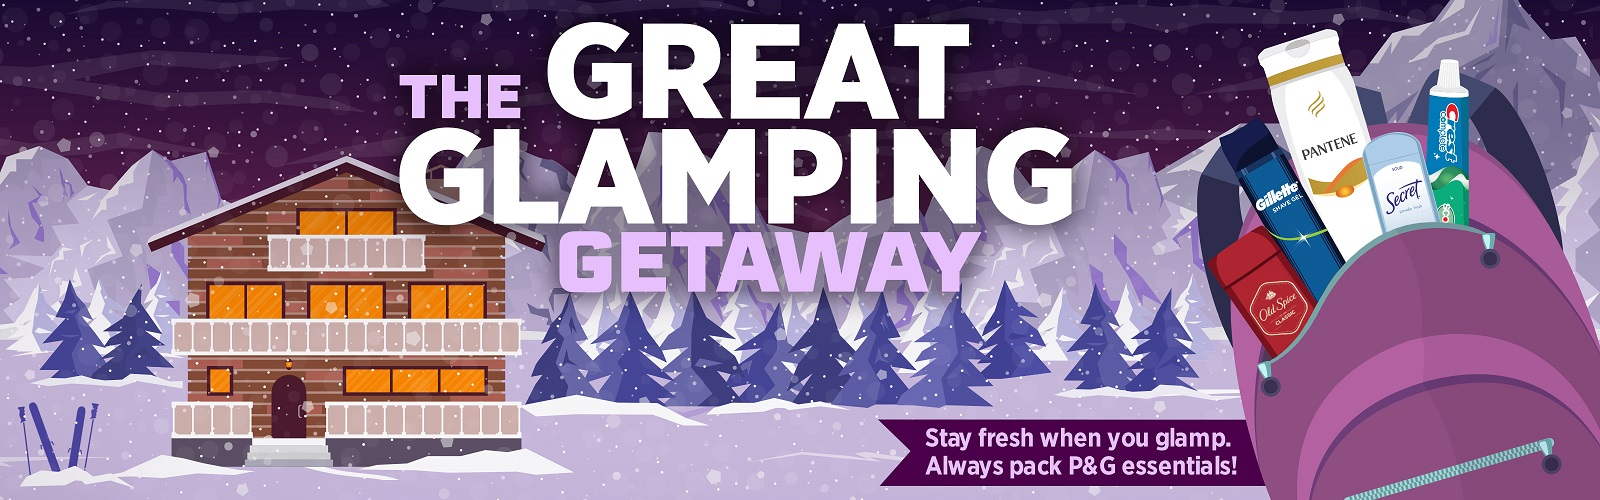 Great Glamping Giveaway